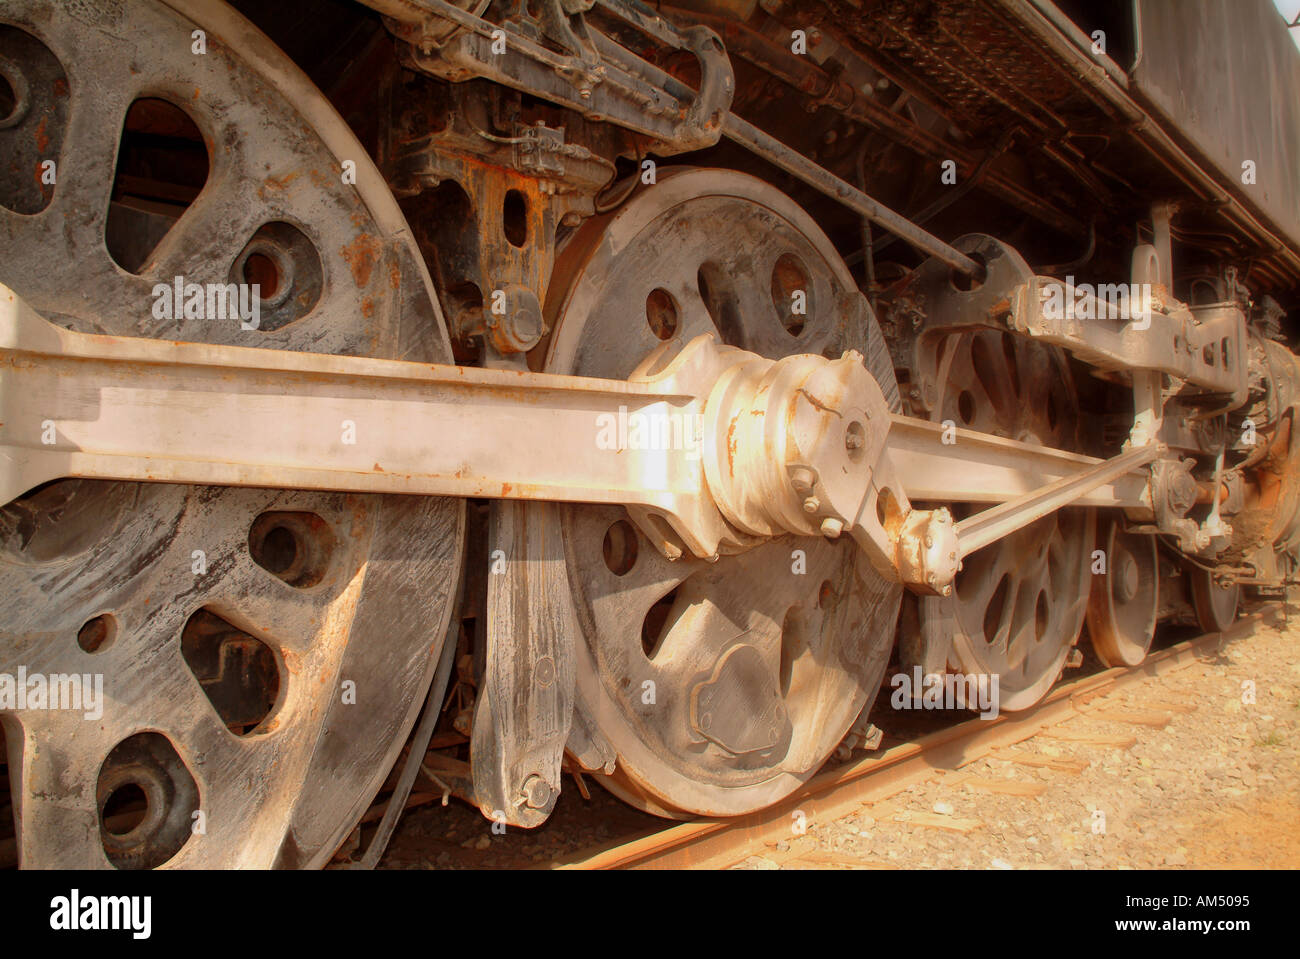 old antique steam train wheels - Stock Image